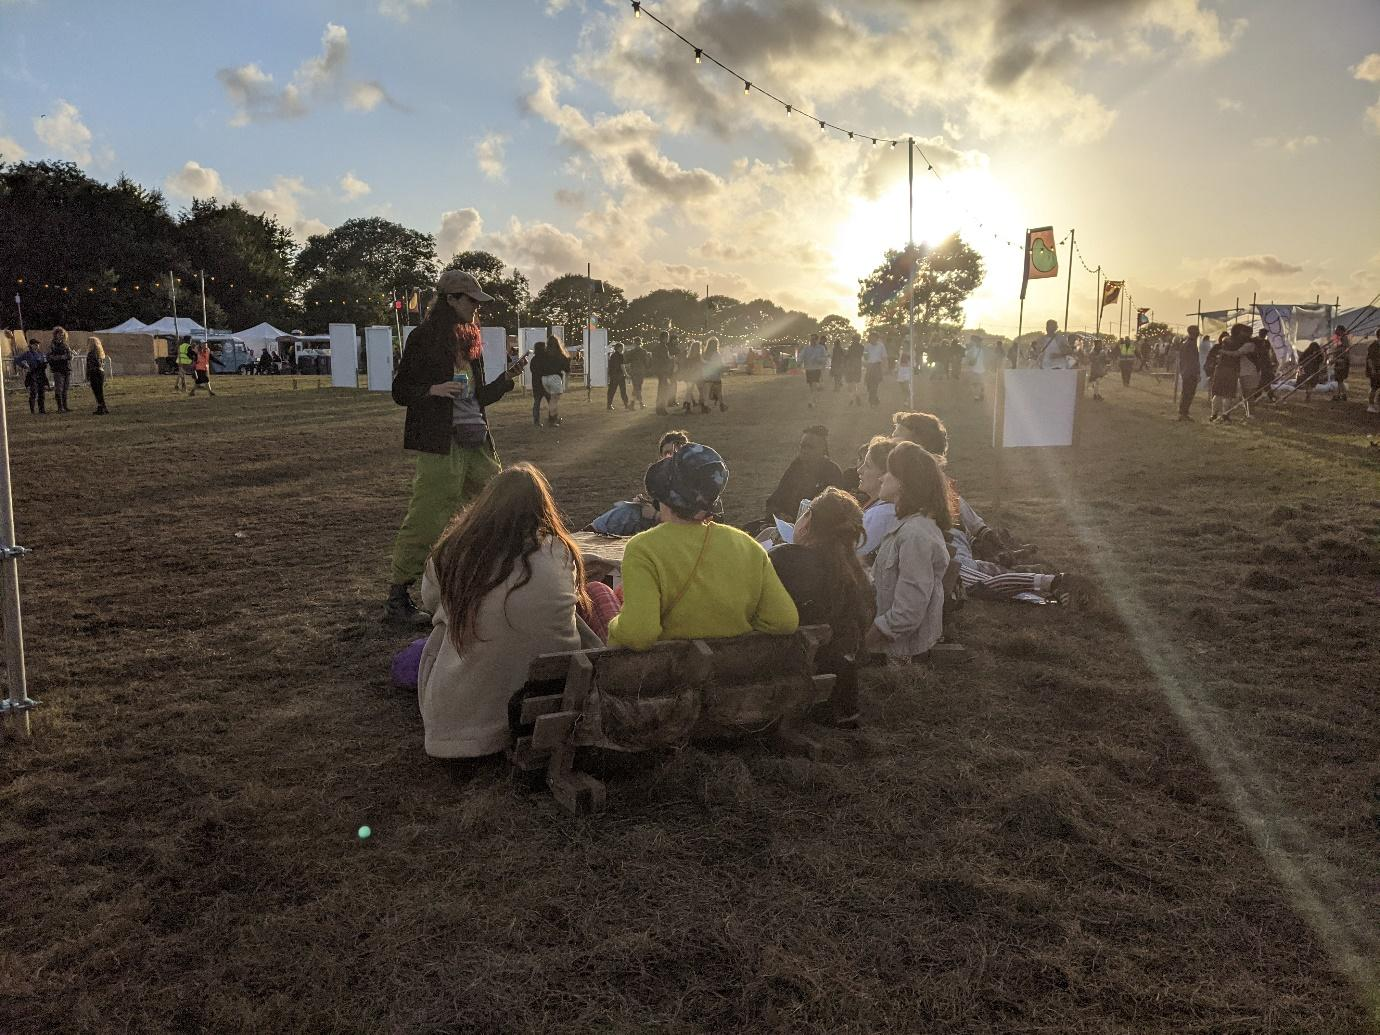 A picture containing grass, sky, outdoor, people  Description automatically generated